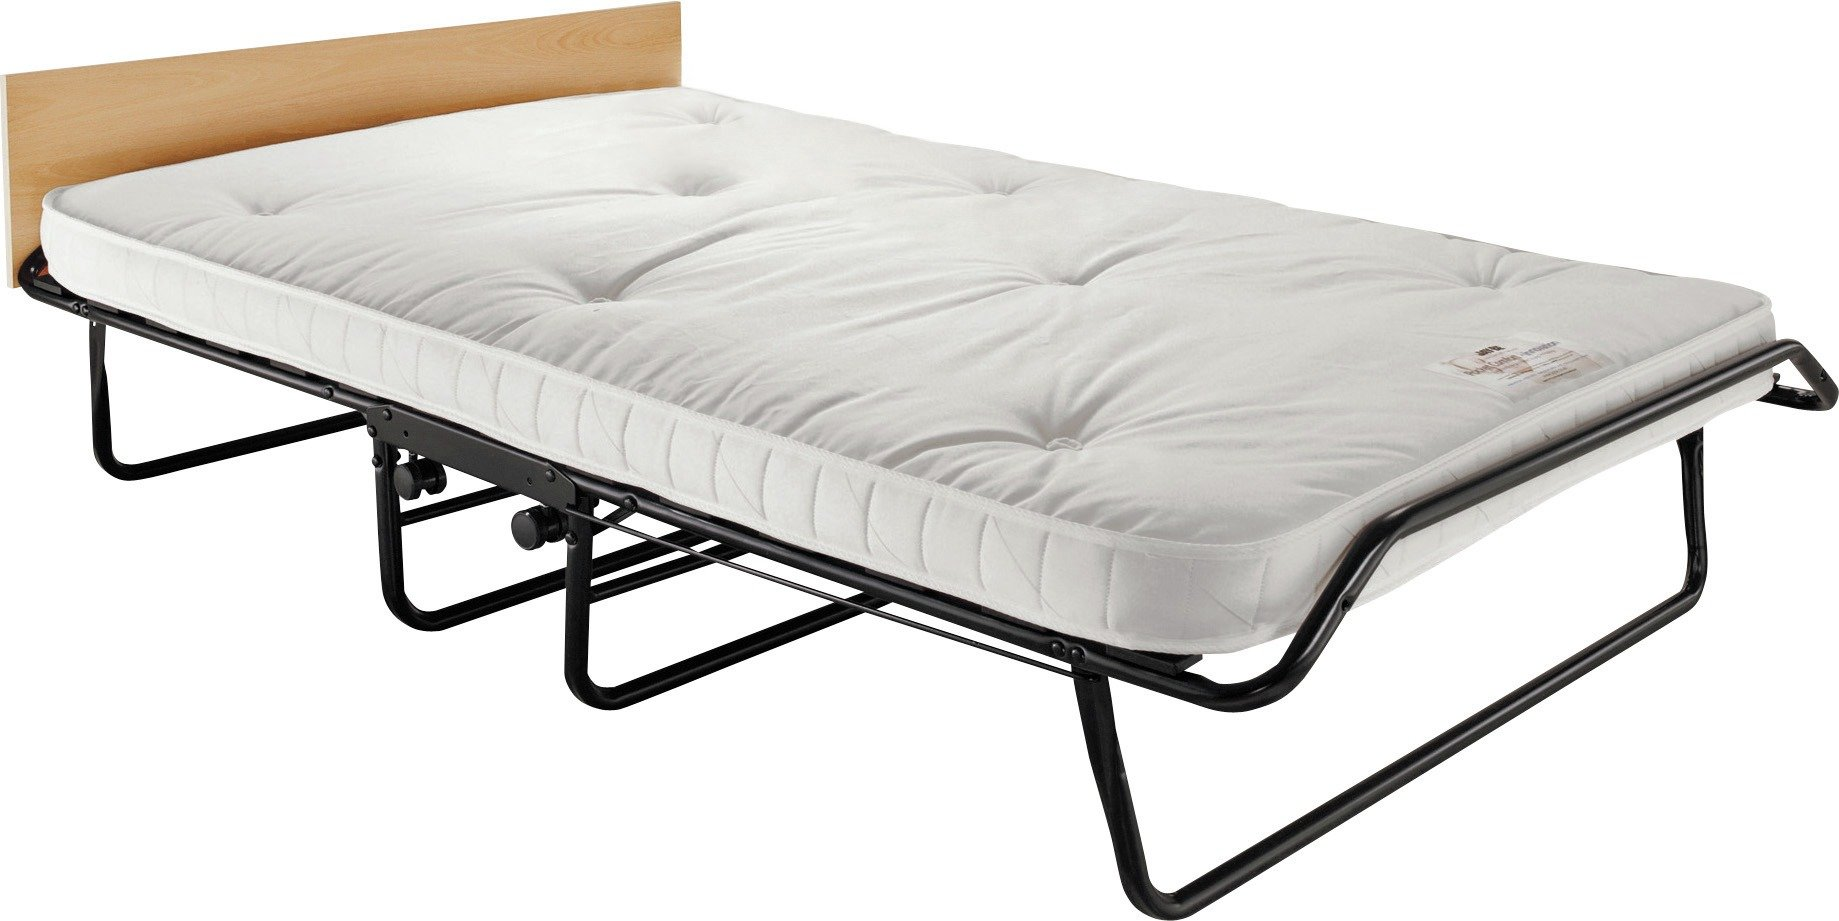 Folding Double Guest Bed With Mattress Jay Be Folding Guest Bed Small Double